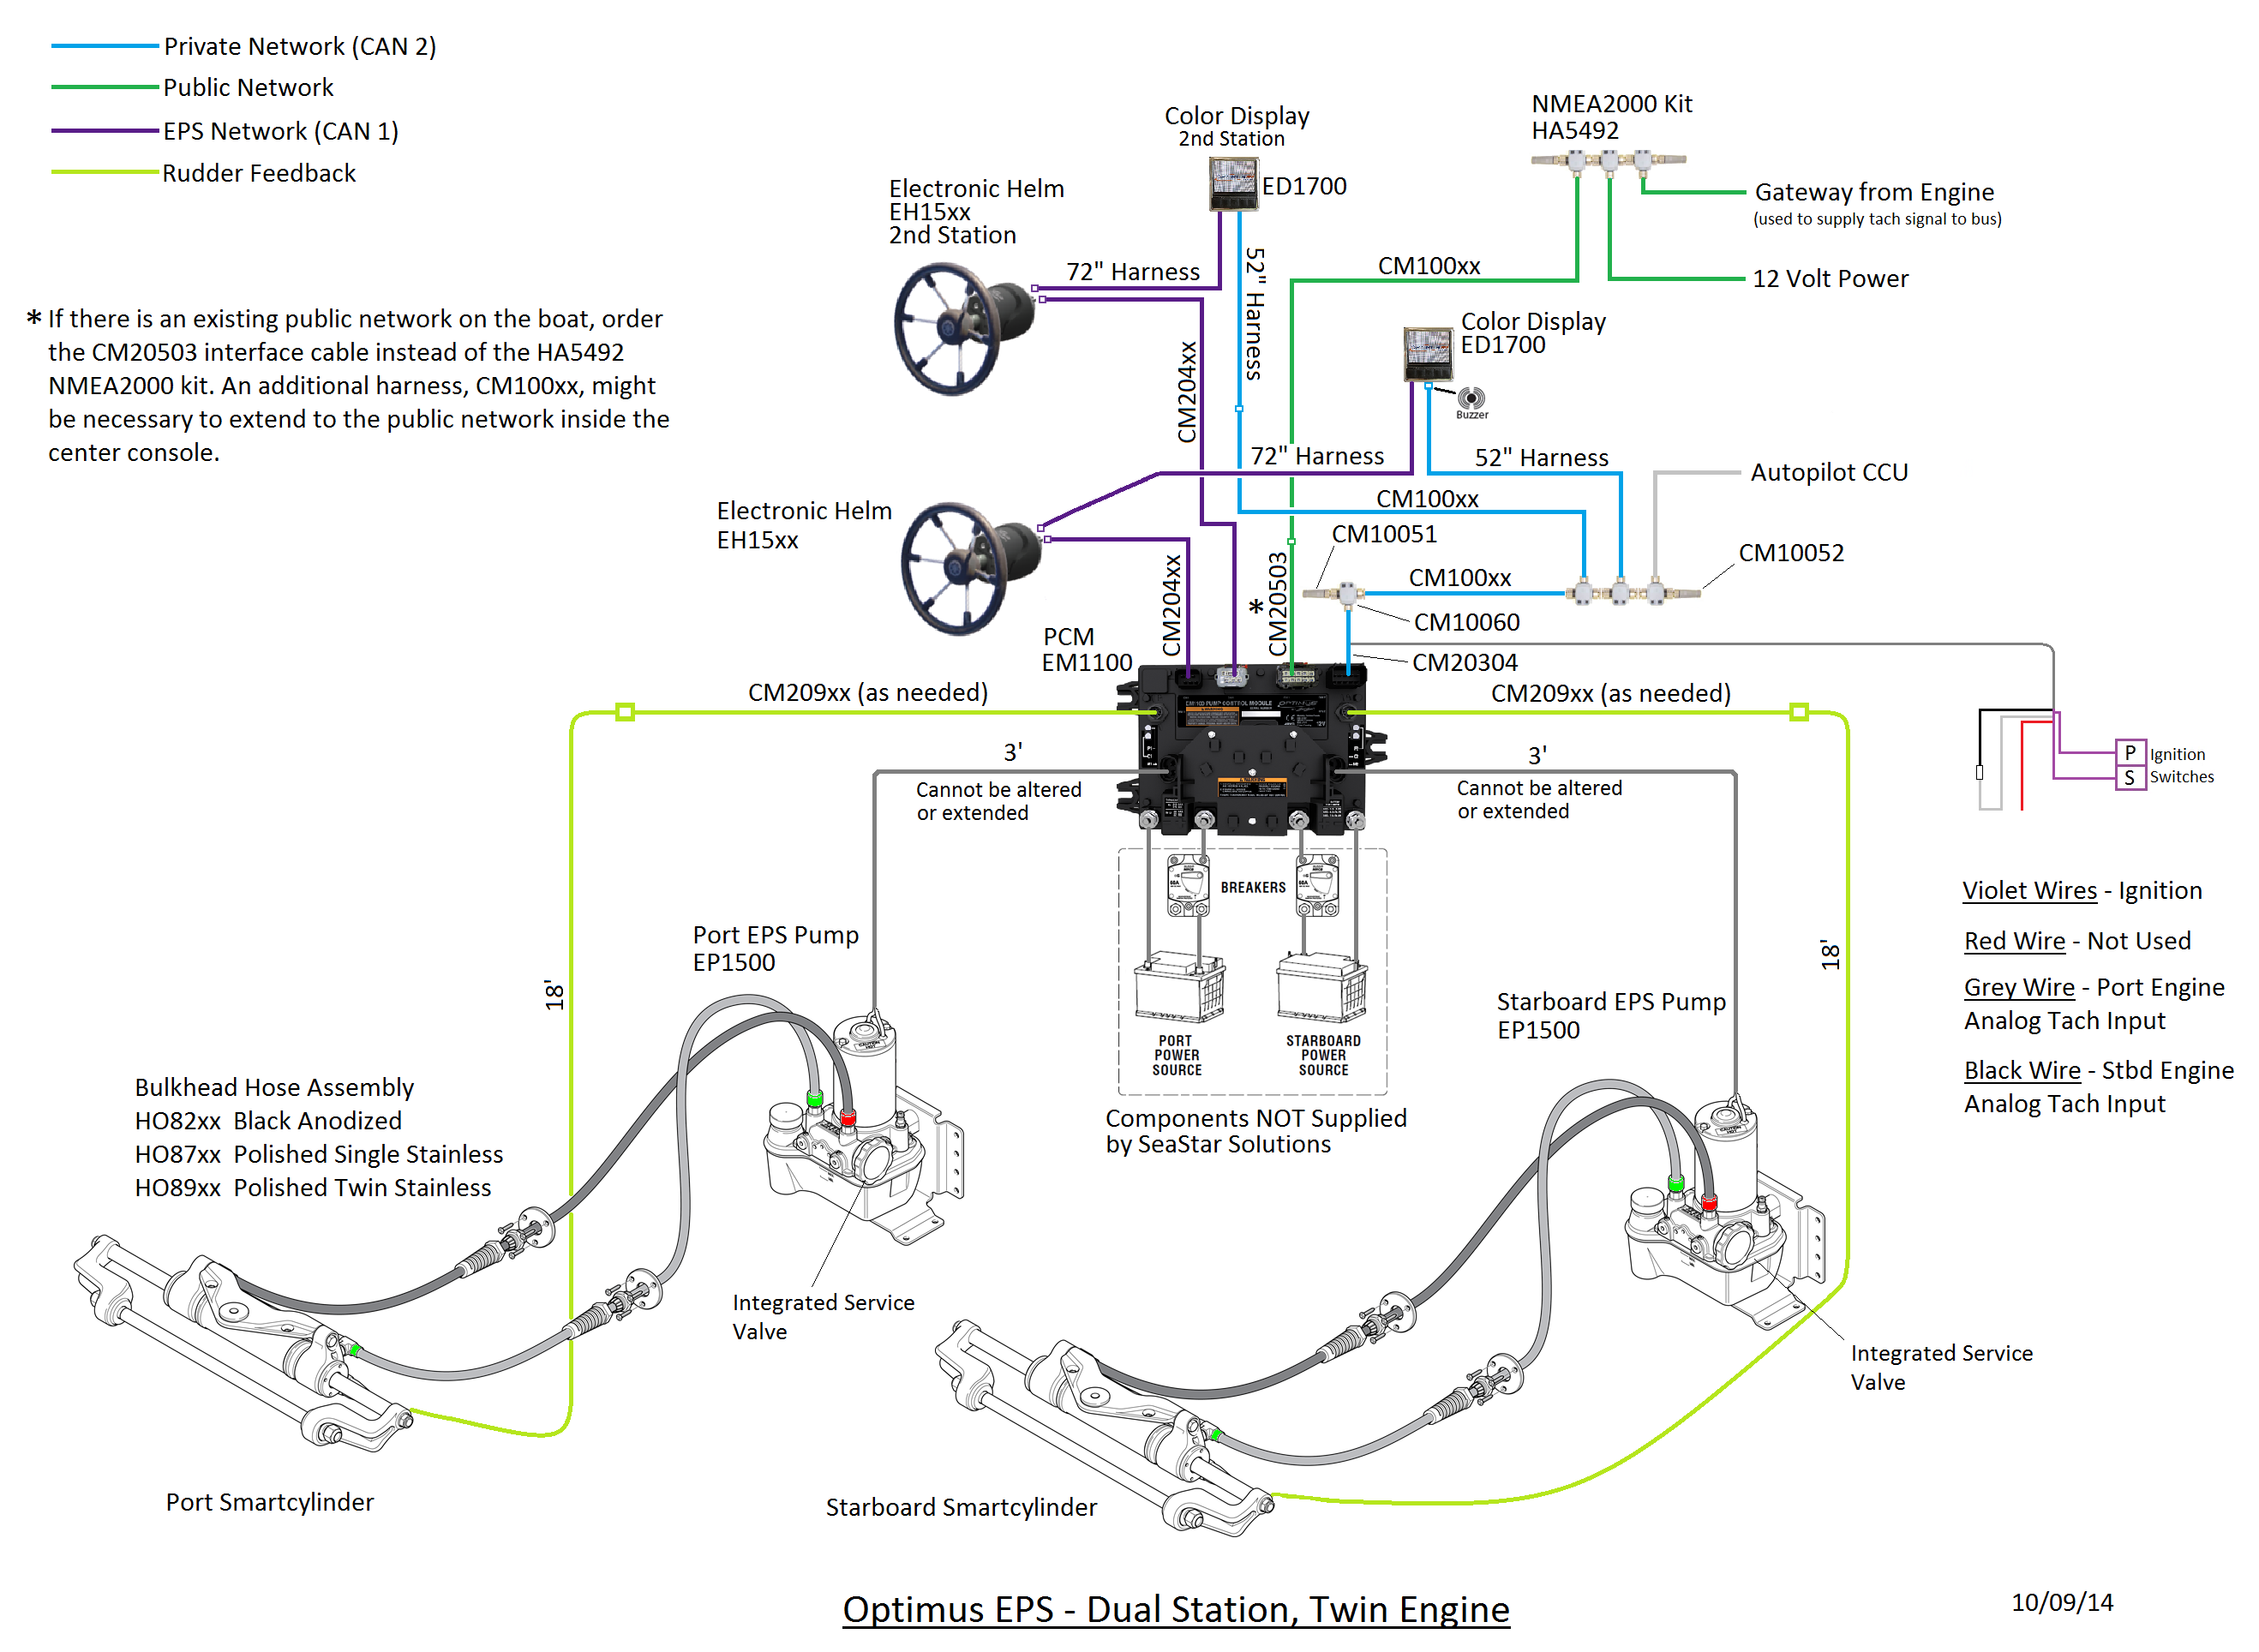 Simple Basic 12 Volt Boat Wiring Diagram from static-resources.imageservice.cloud